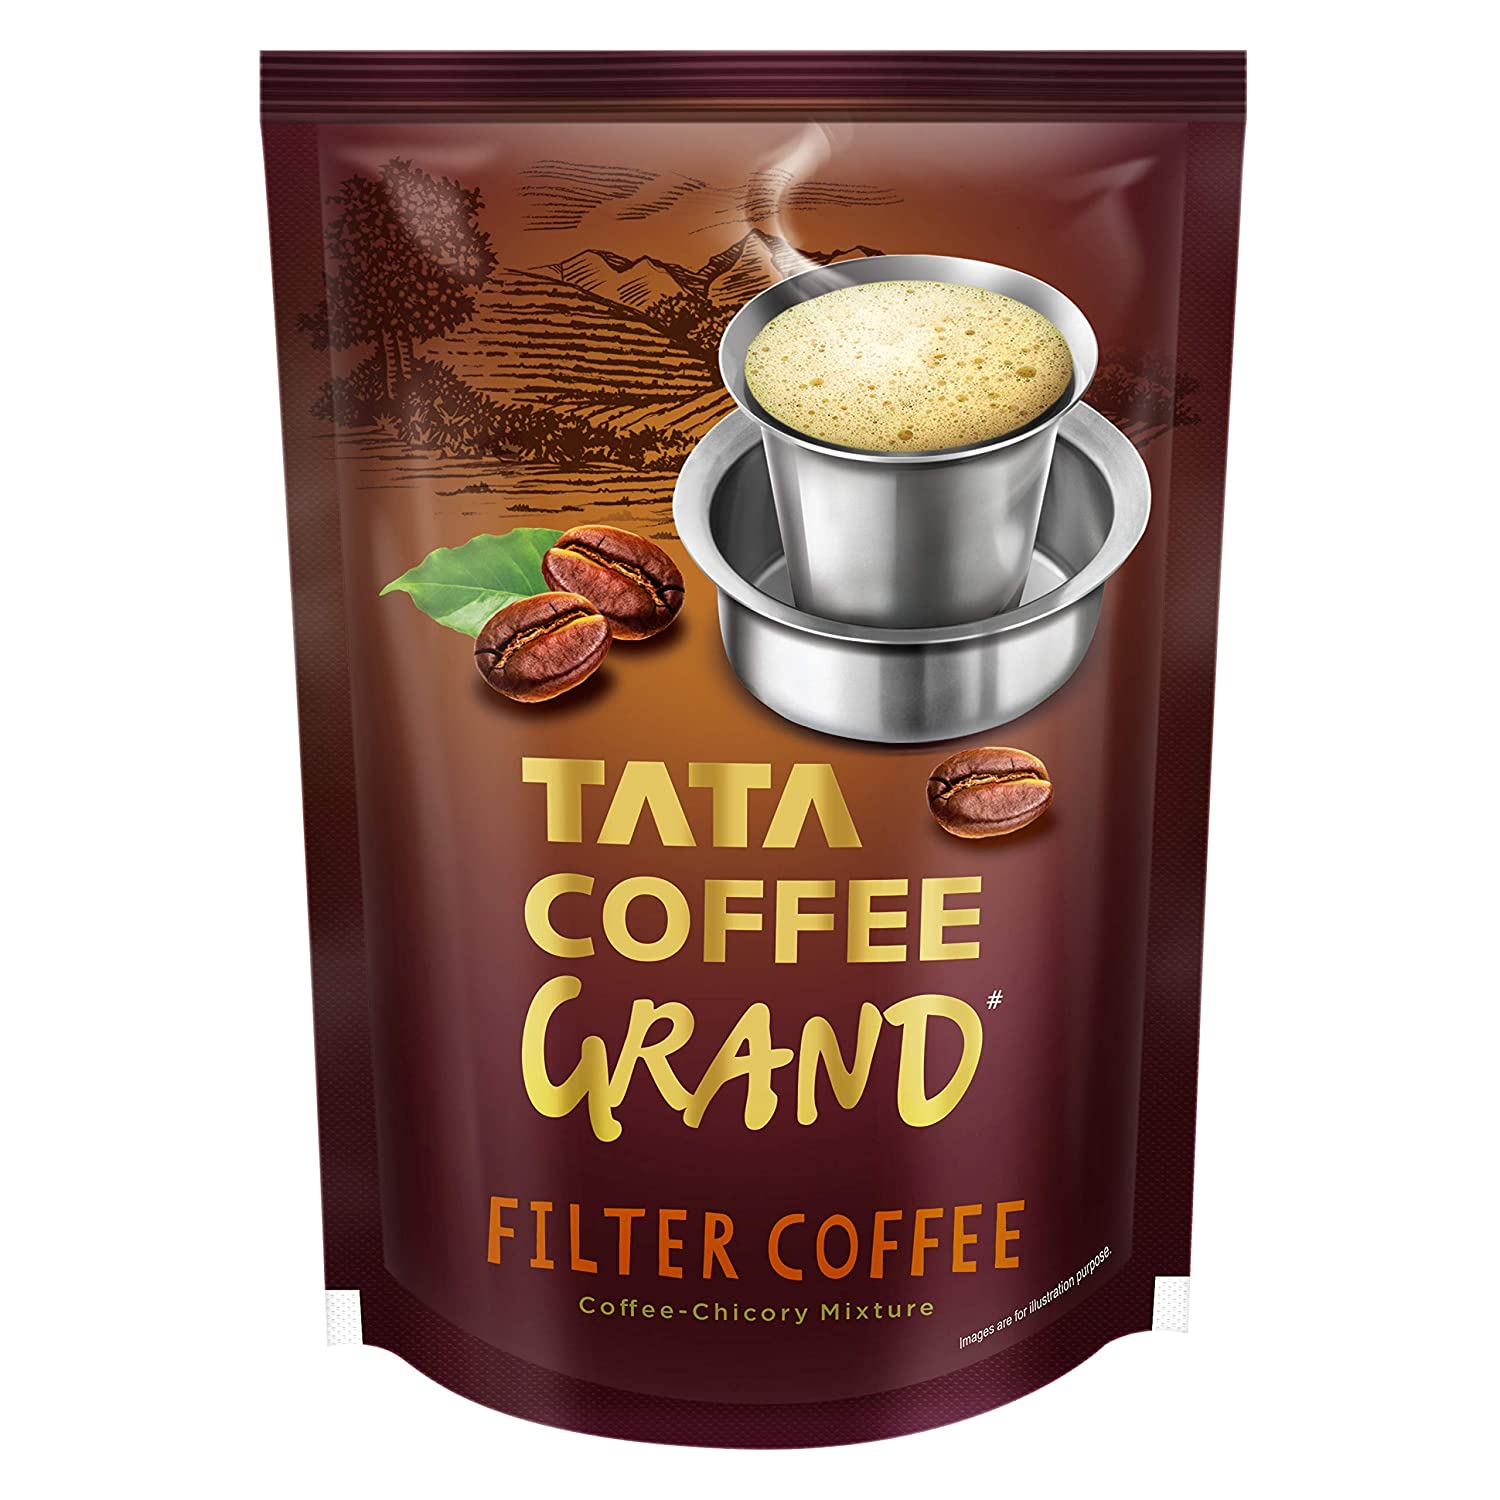 Tata Coffee Grand Filter Coffee, 500g